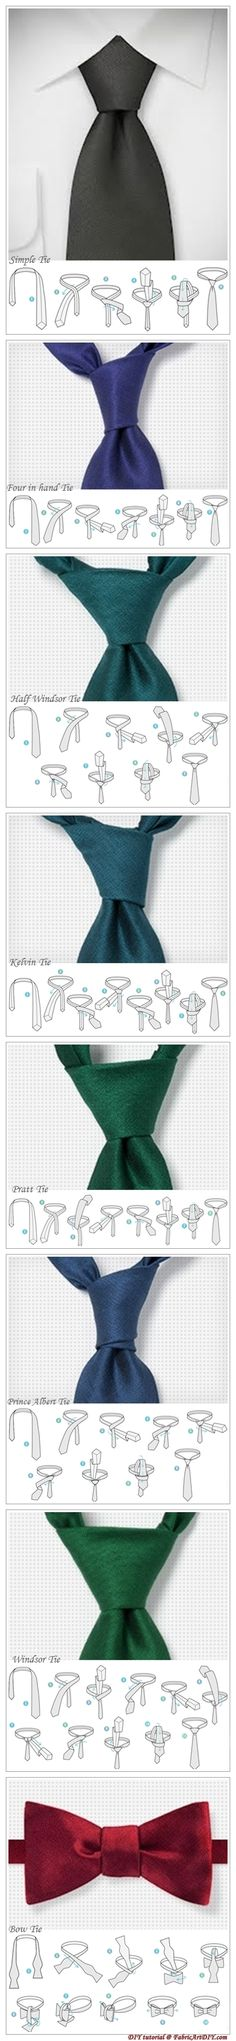 Classic tie knot instructions ---> https://goo.gl/gJdiXV